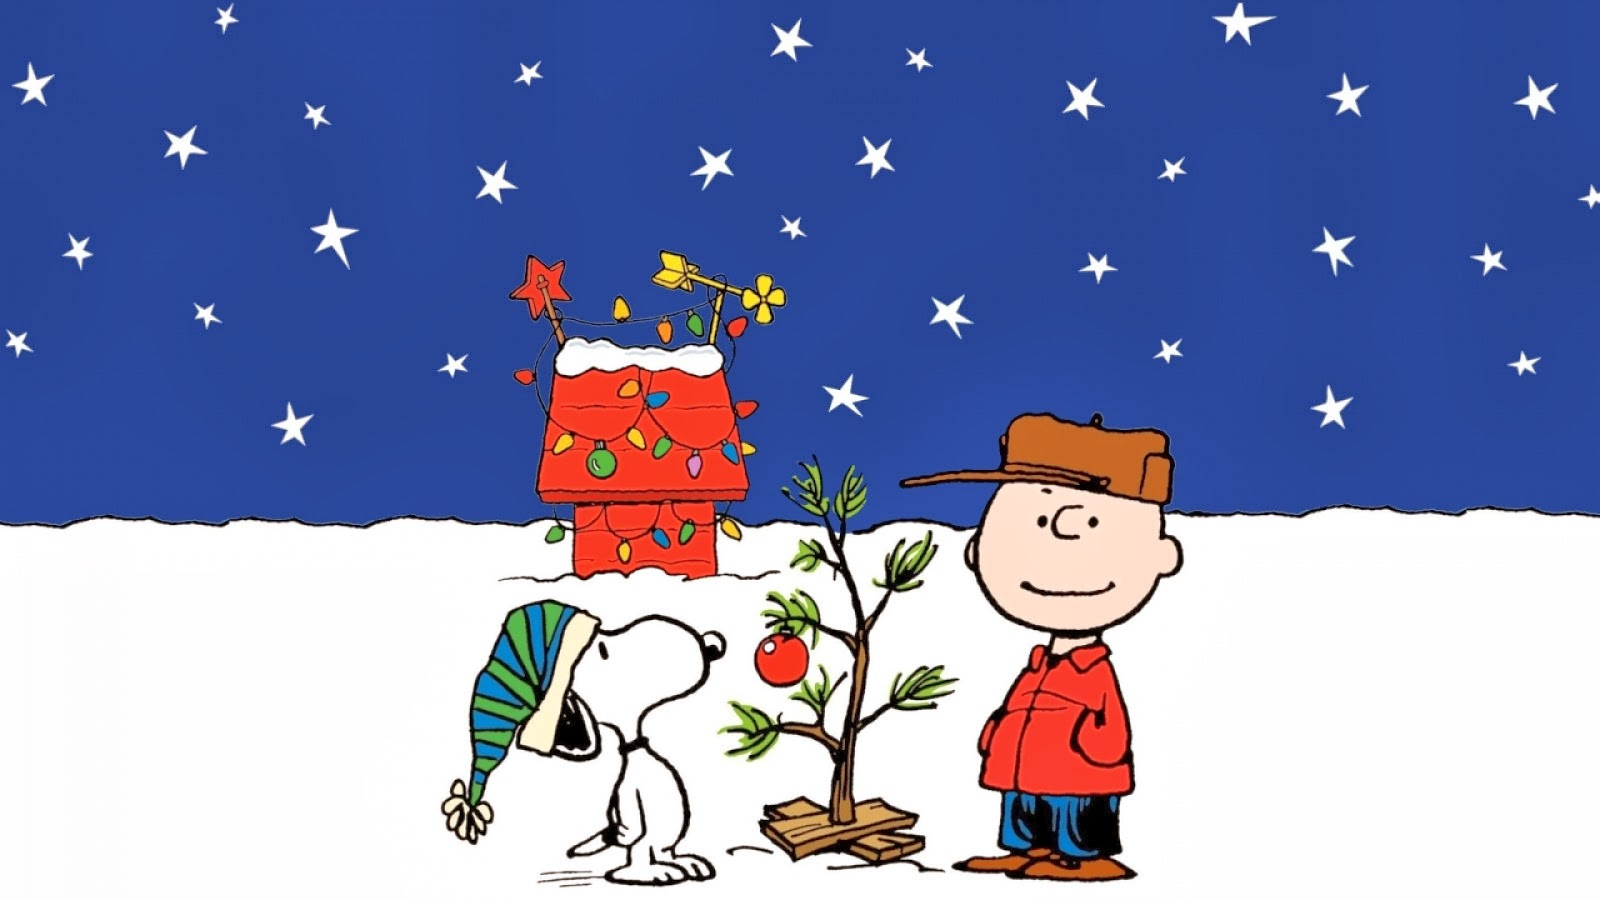 Snoopy Wallpaper iphone christmas, Snoopy wallpaper